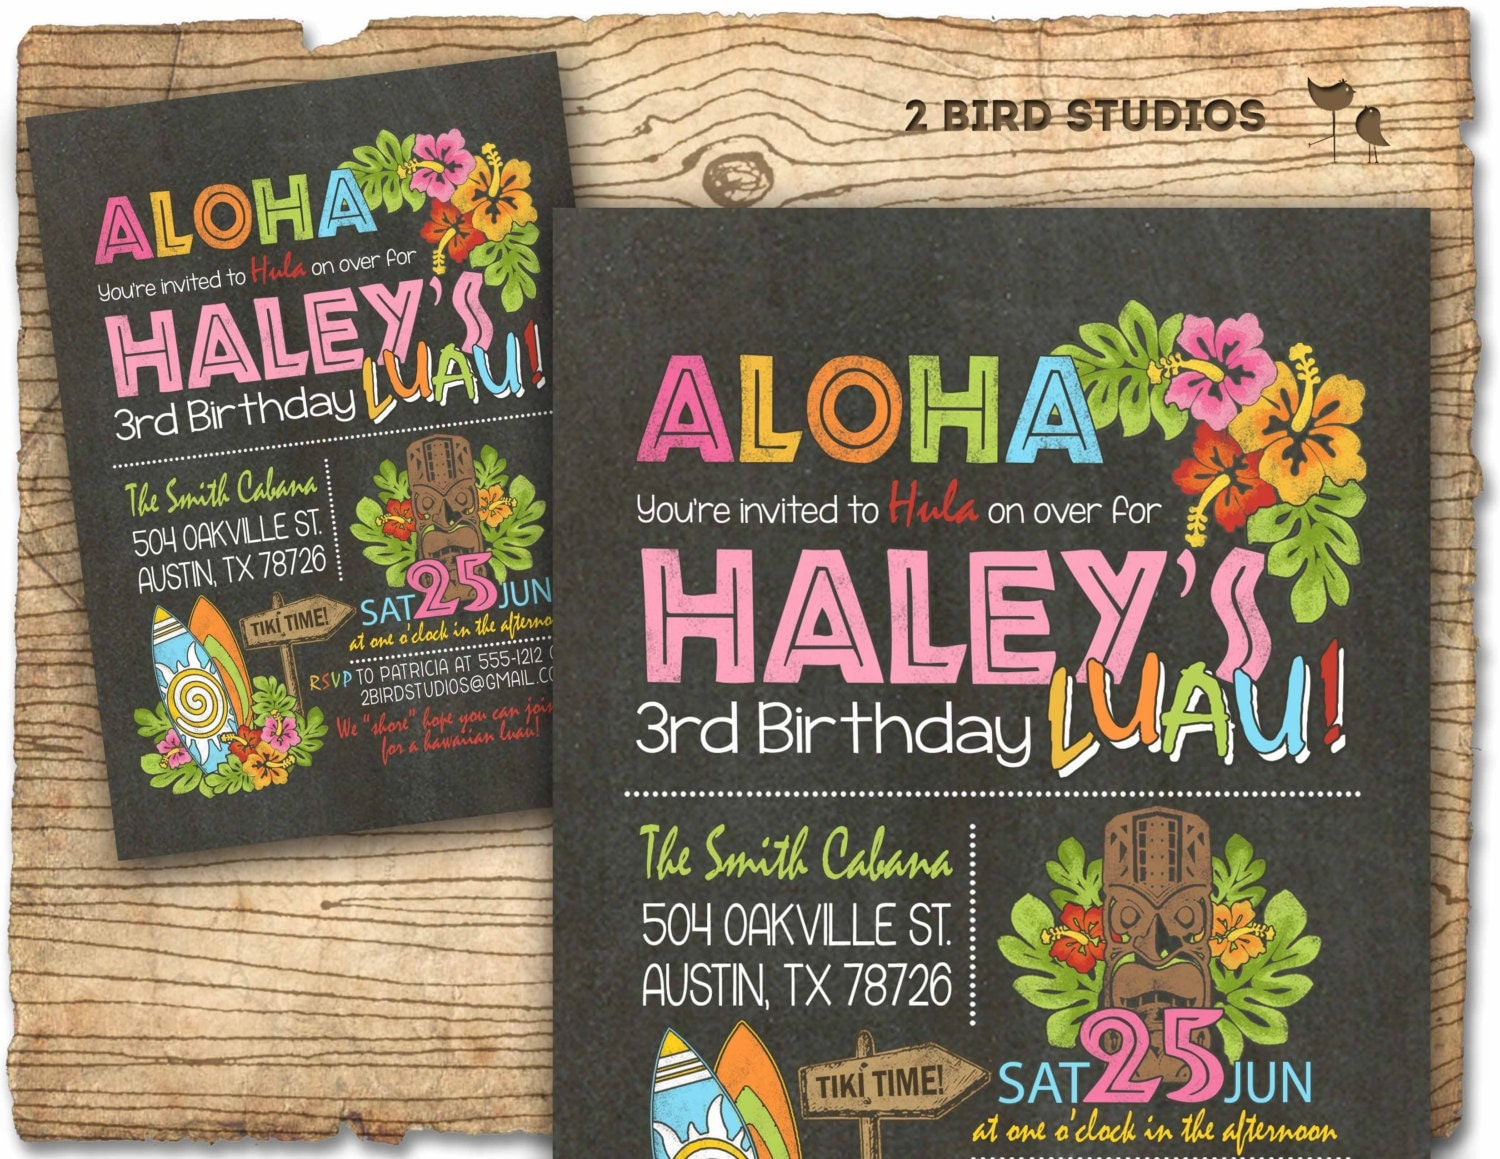 Hawaiian birthday invitation Luau birthday invitation – Party City Invitations for Birthdays